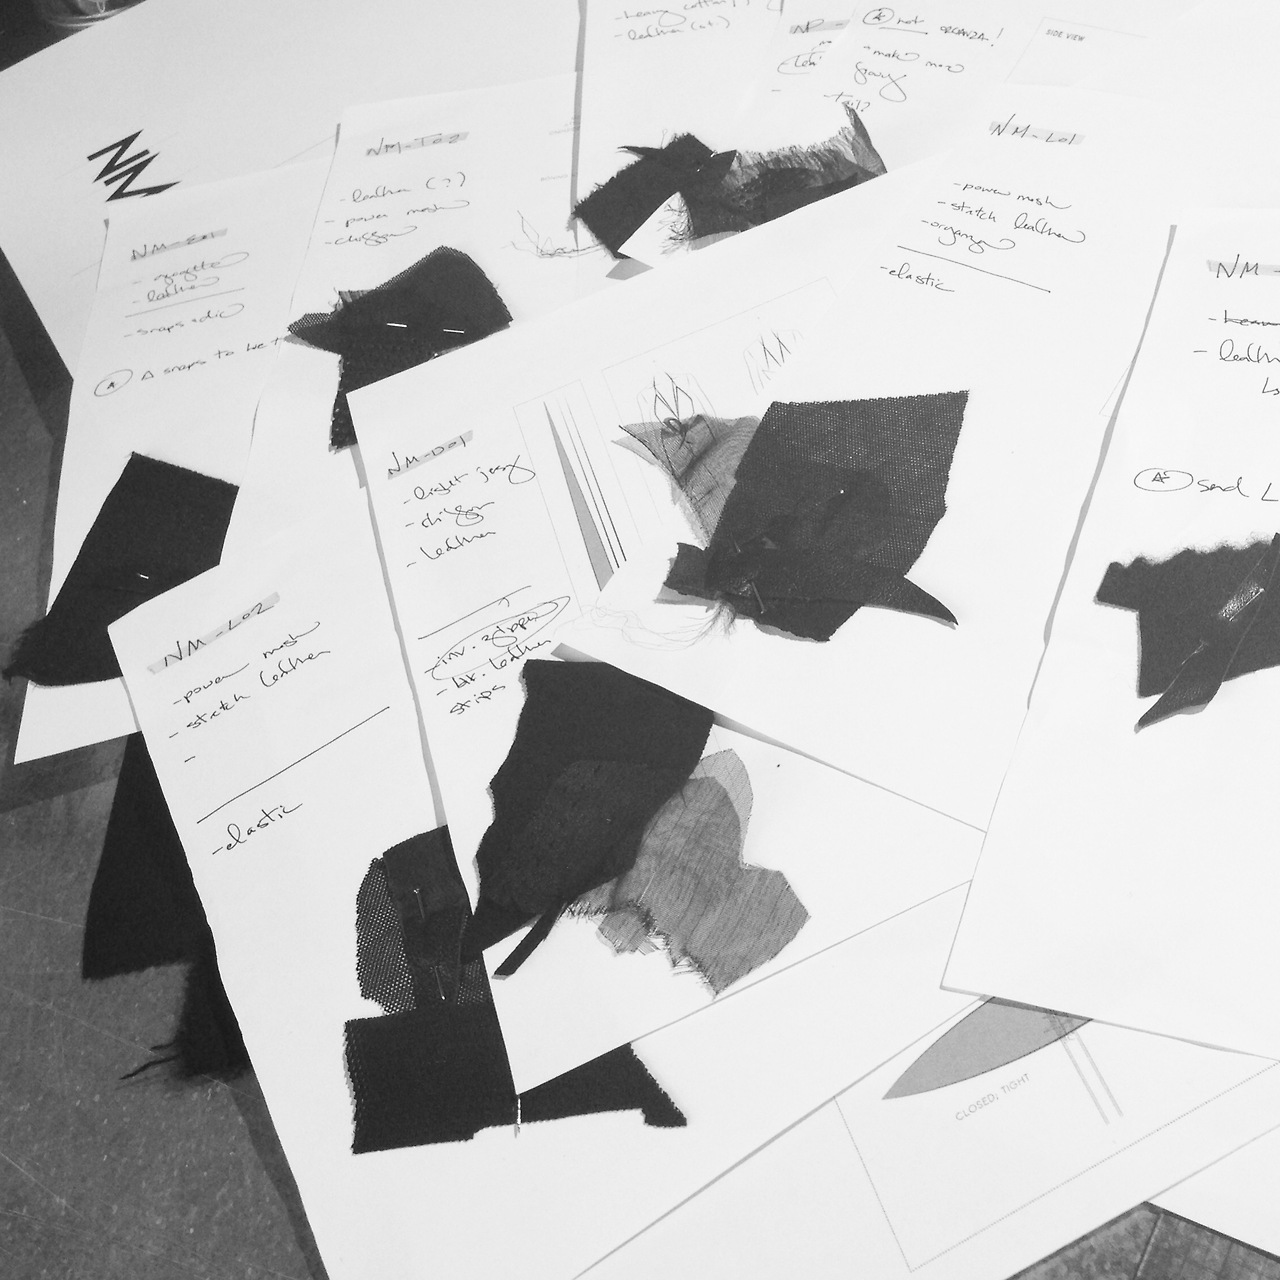 Finalizing production fabrics for A / W 2013!